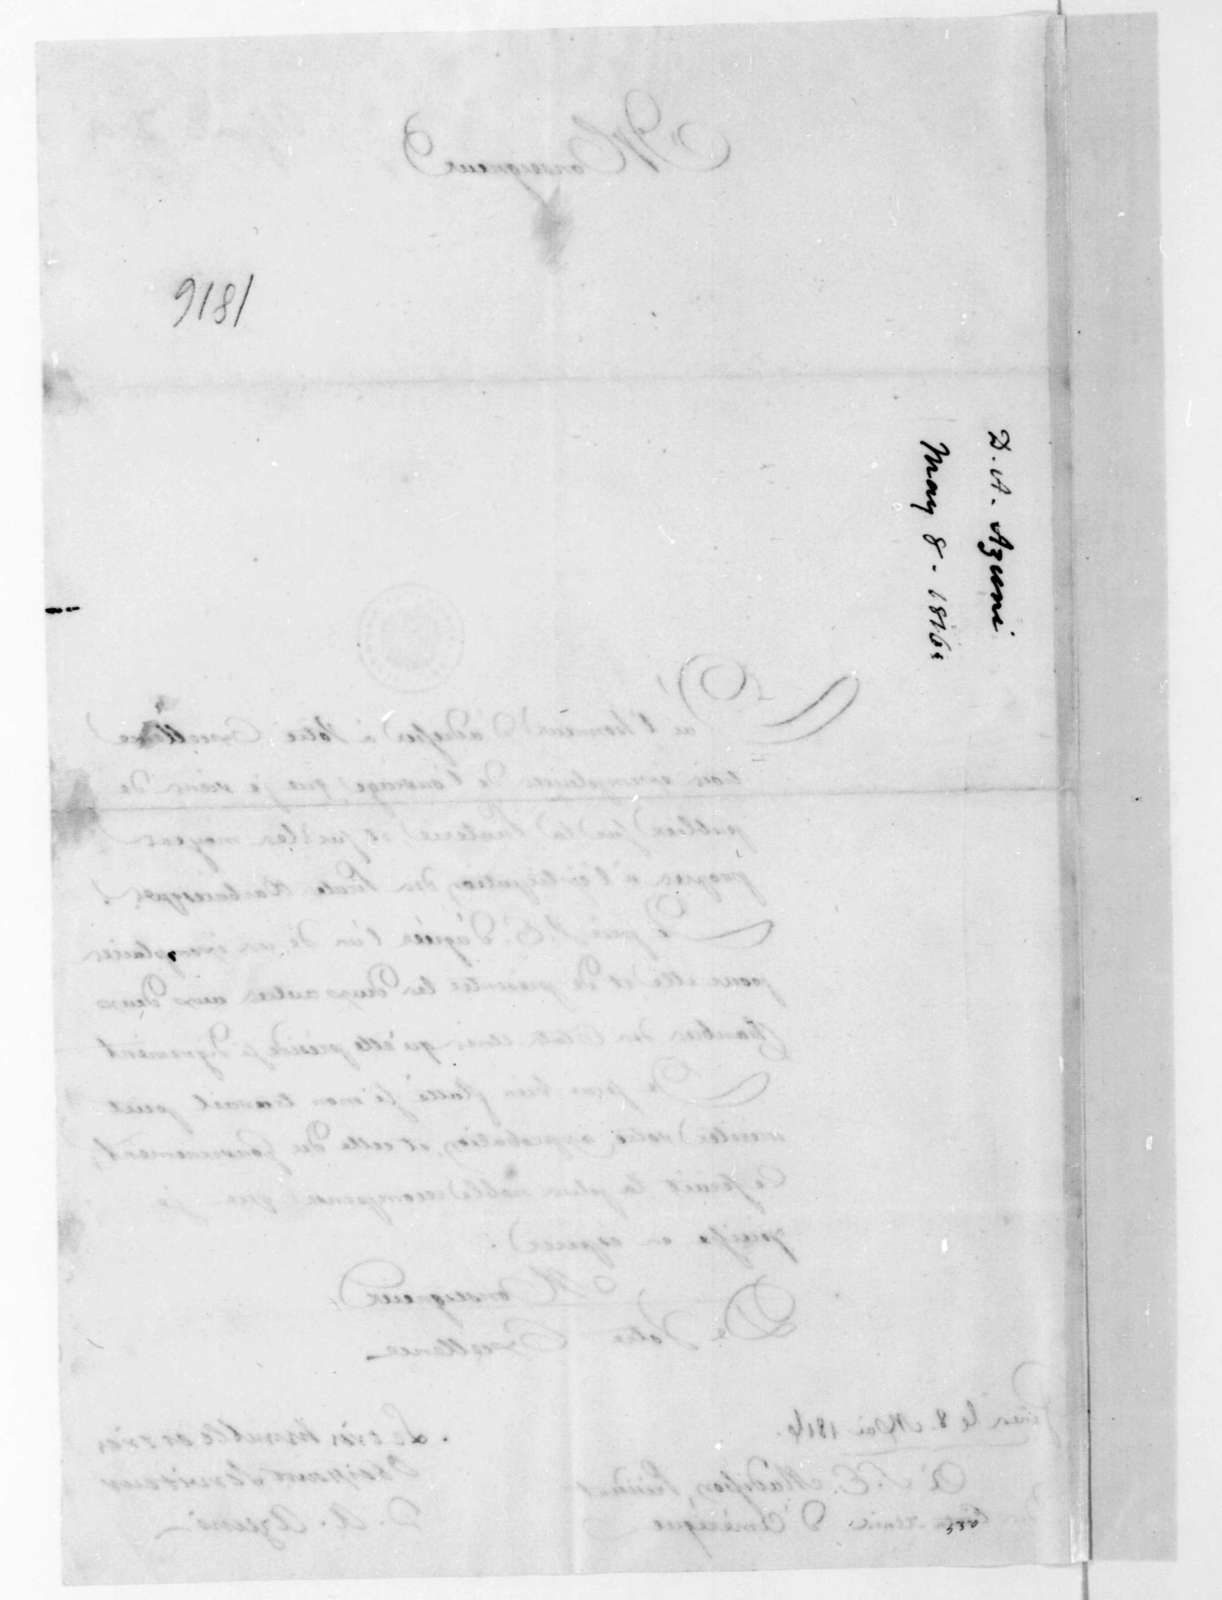 D. A. Azuni to James Madison, May 8, 1816. In French.